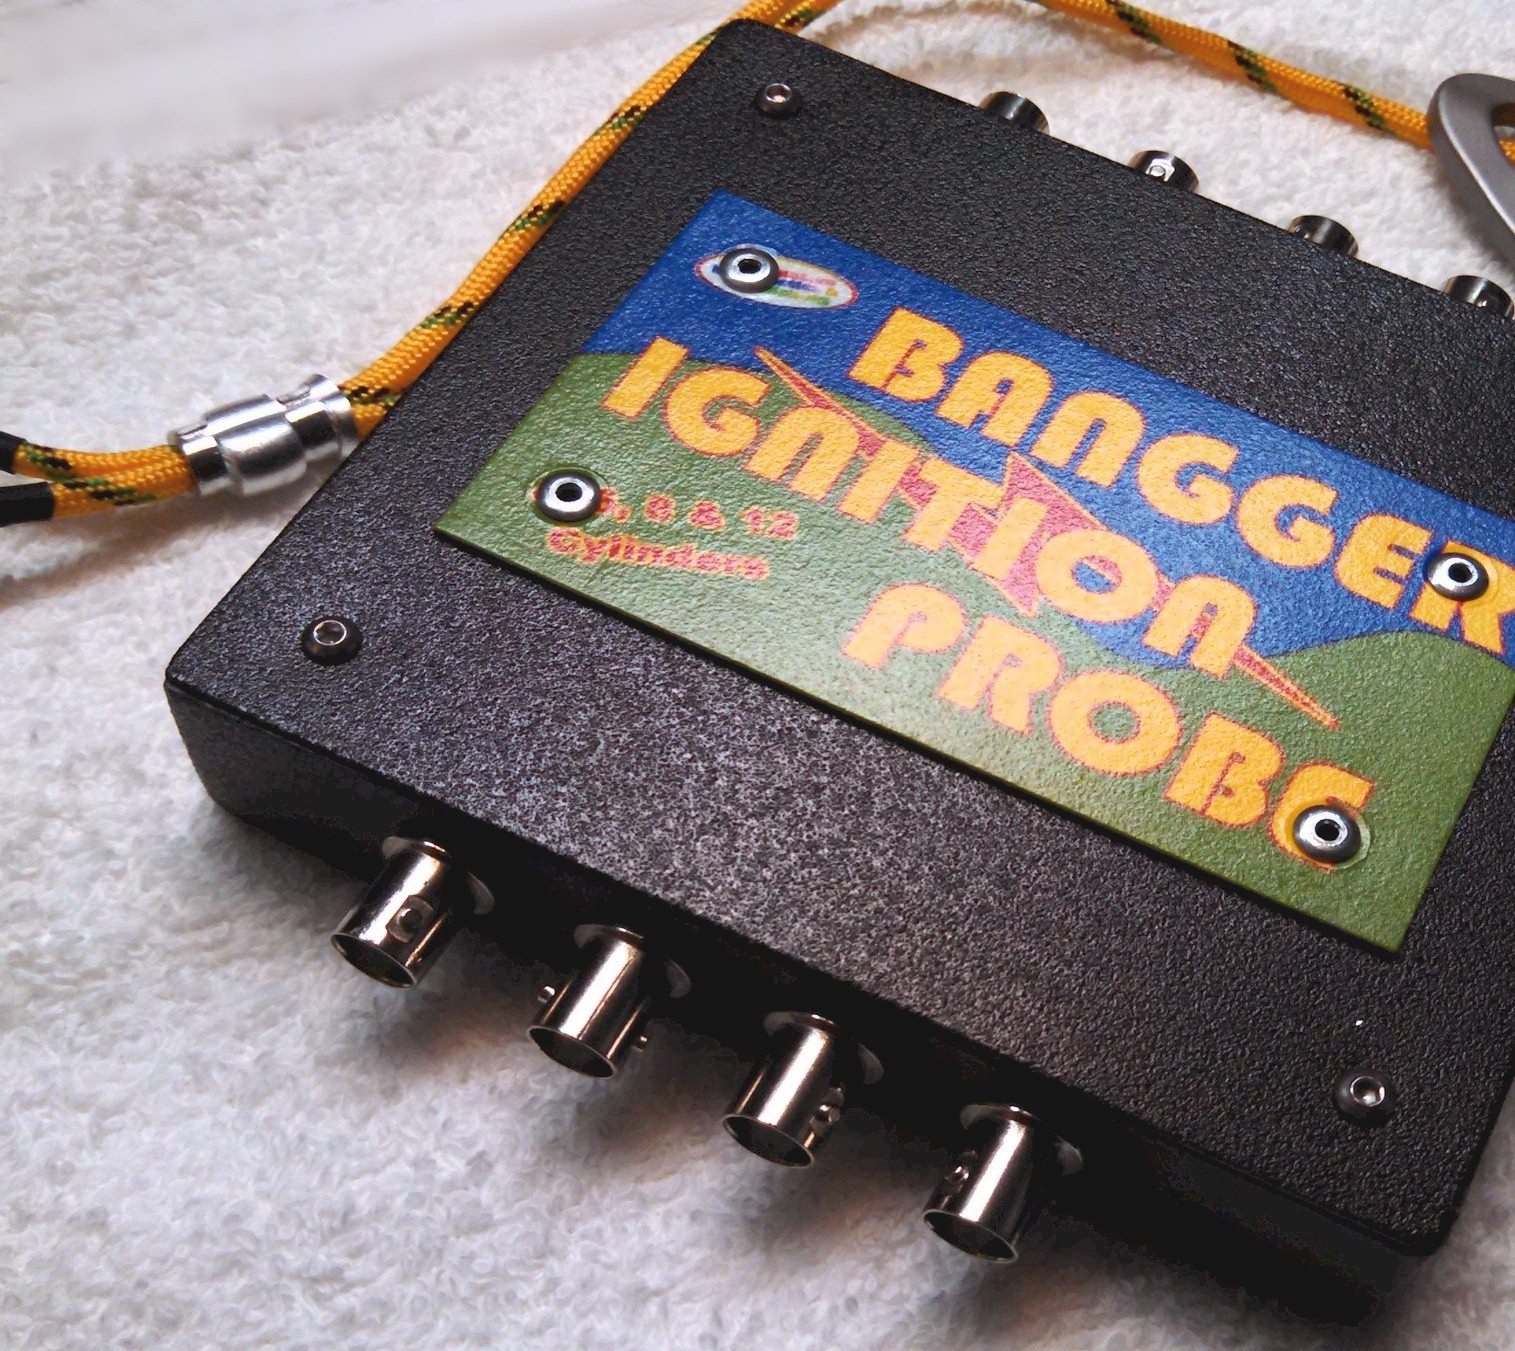 bangger ignition probe